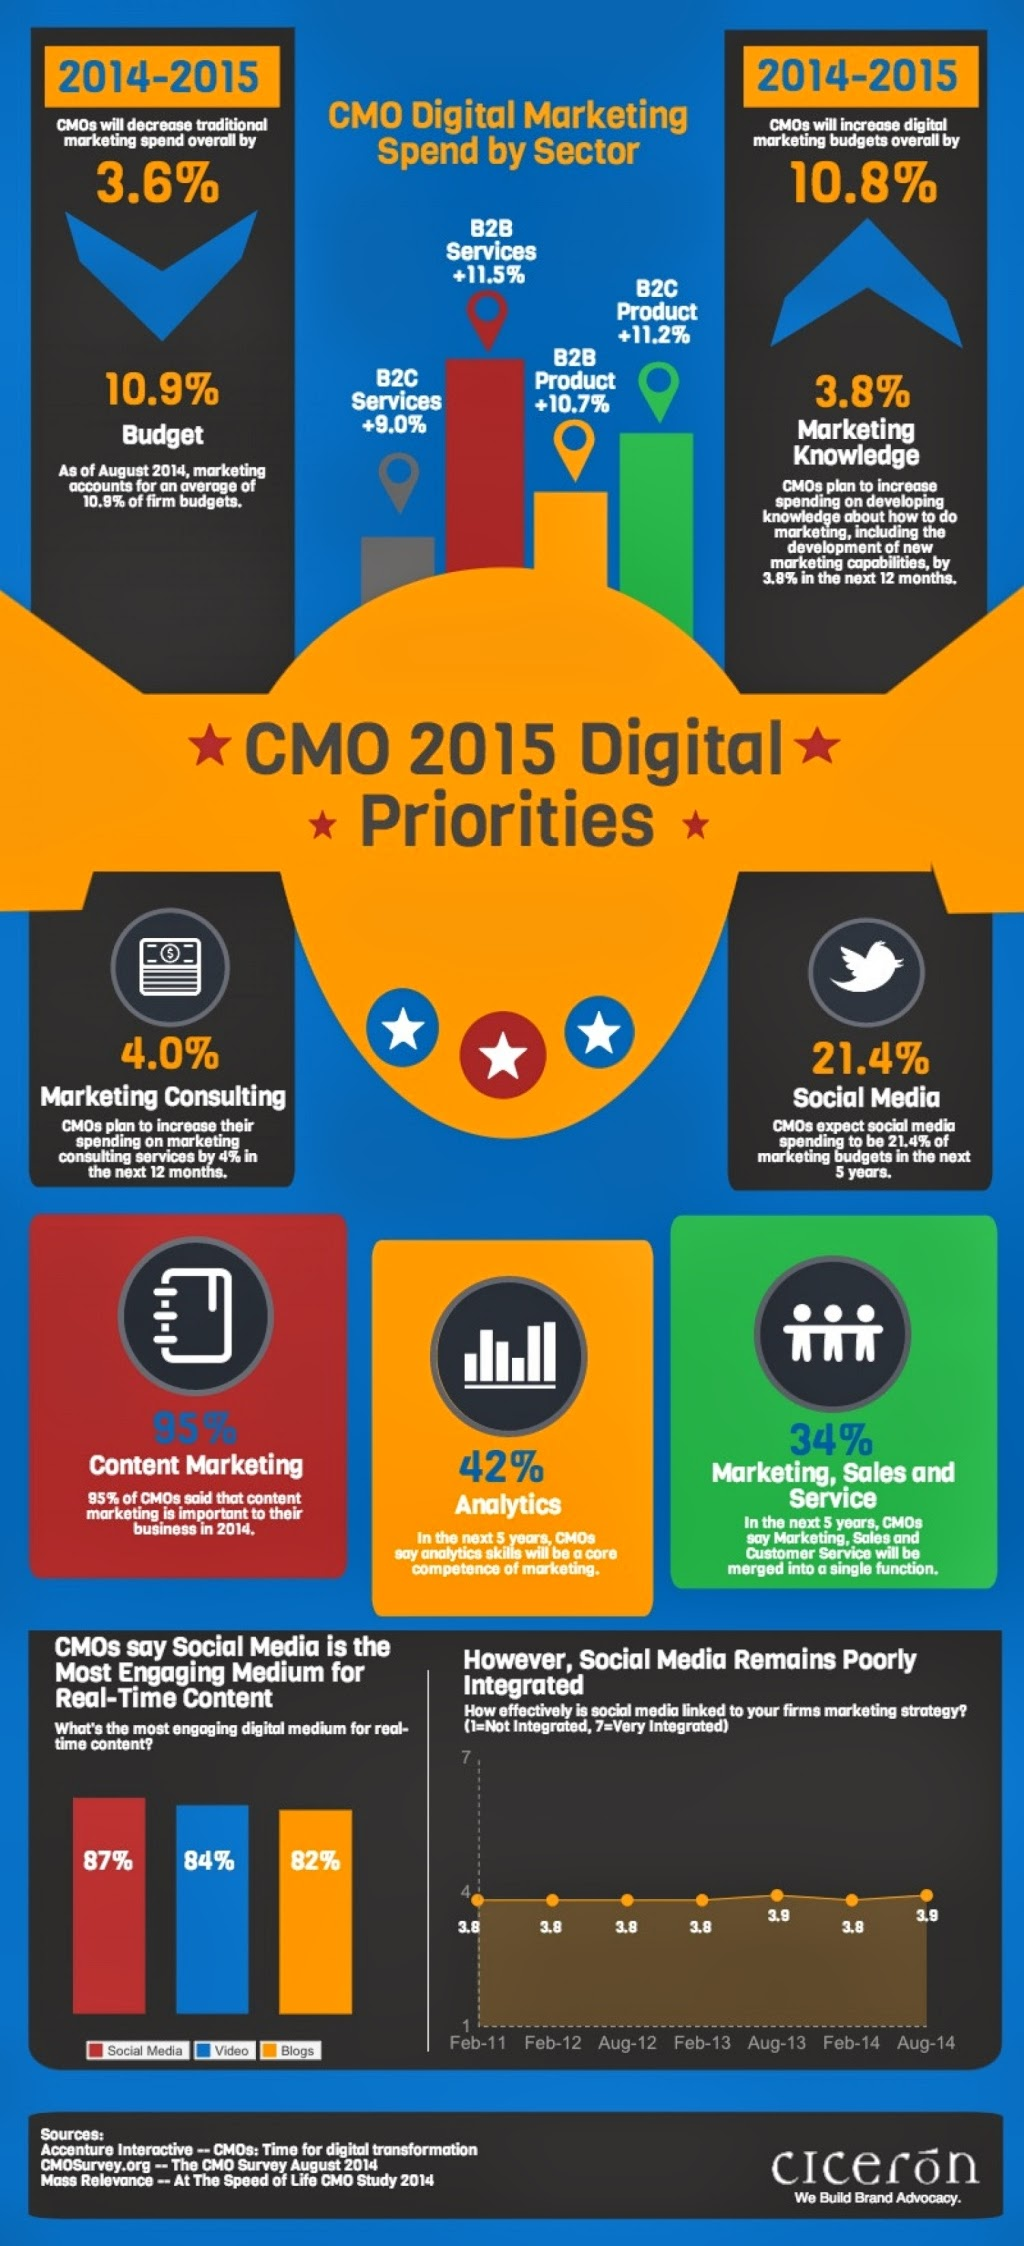 CMO 2015 Digital Priorities